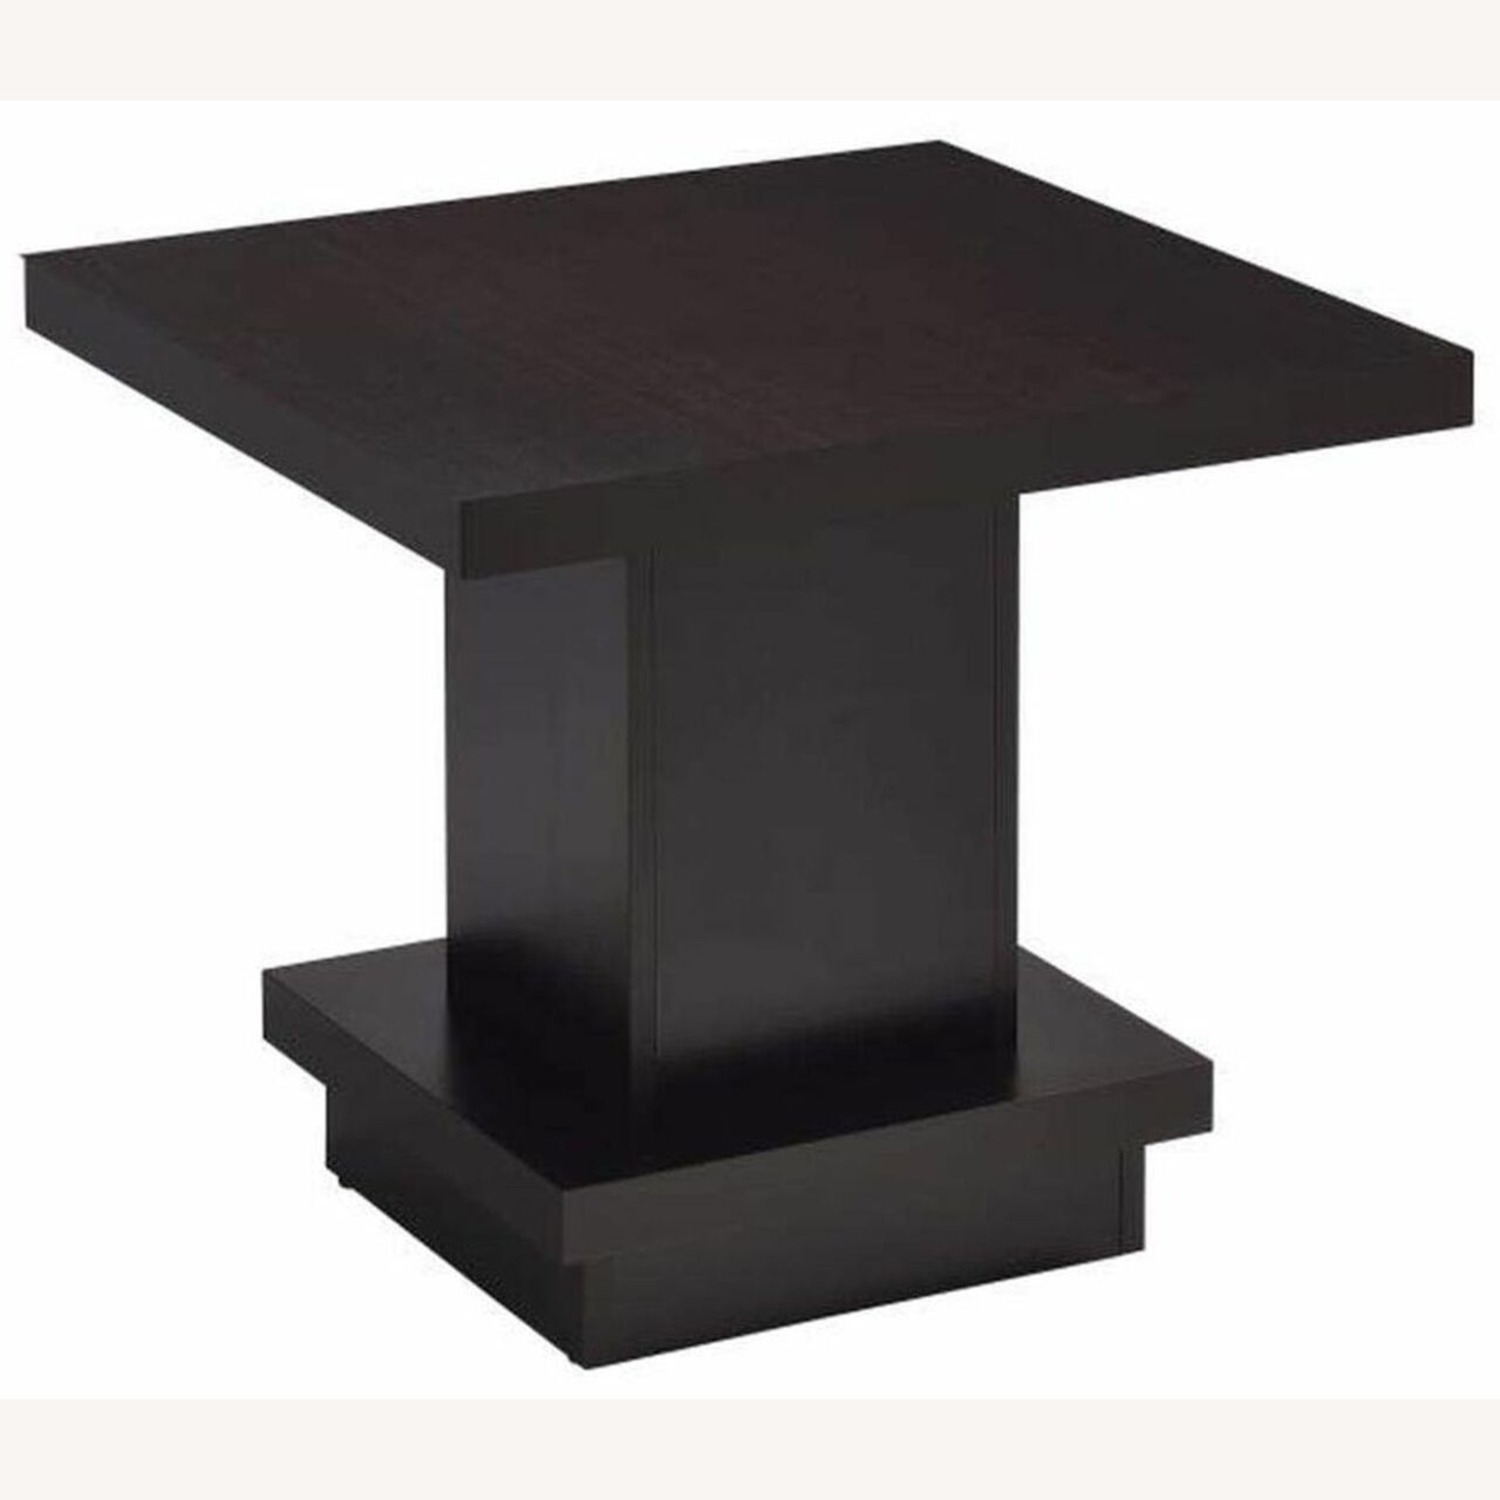 End Table In Warm Cappuccino Finish - image-1